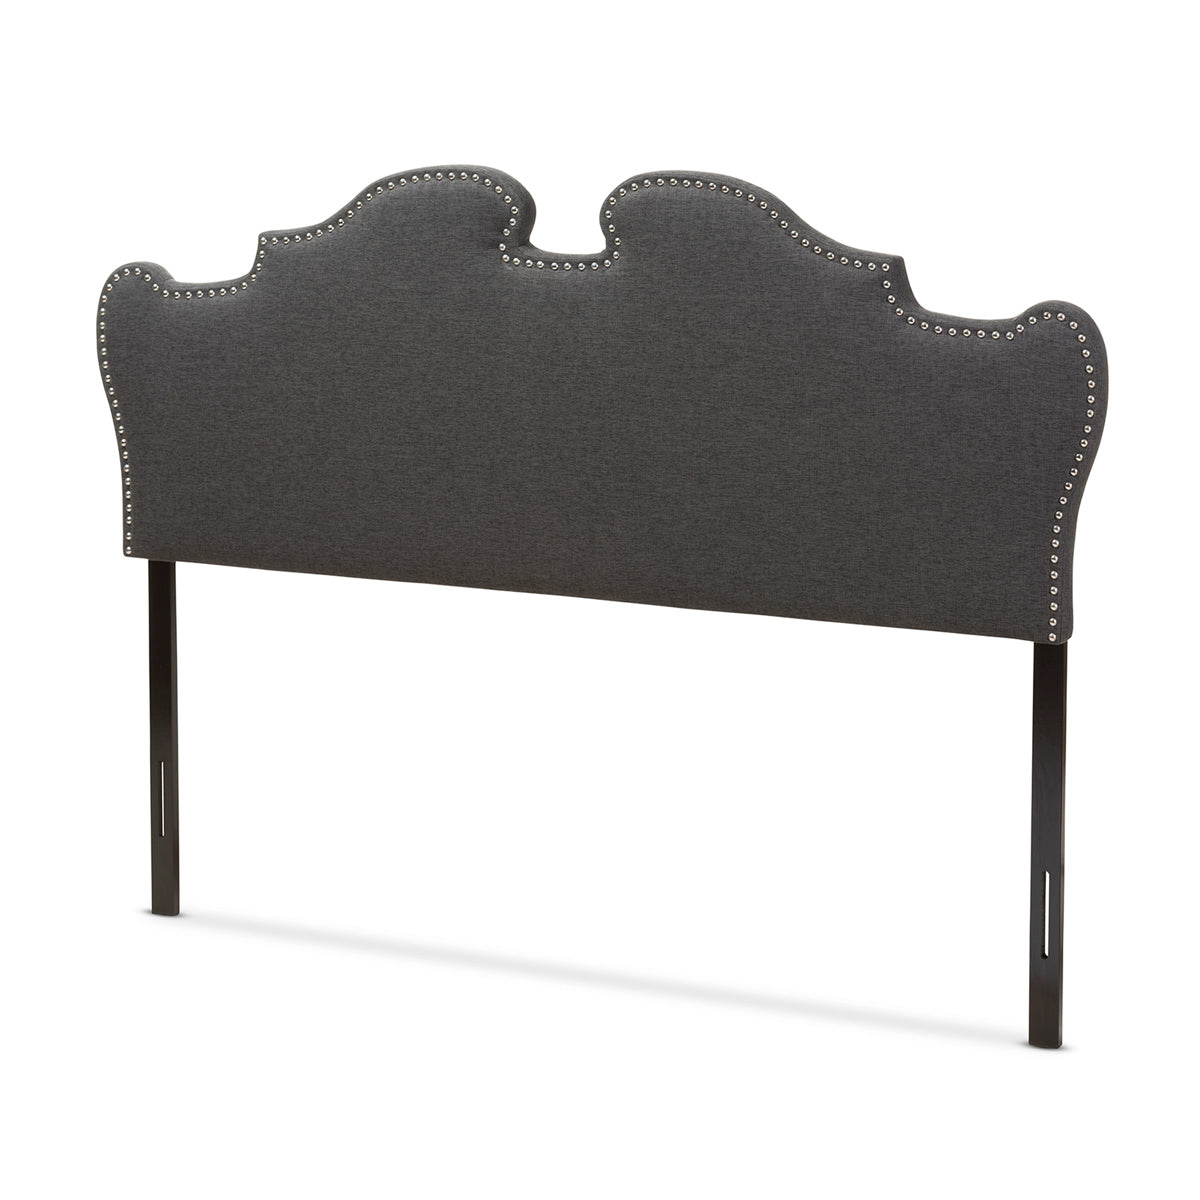 Baxton Studio Dalton Modern and Contemporary Dark Grey Fabric Queen Size Headboard Baxton Studio-Headboards-Minimal And Modern - 1